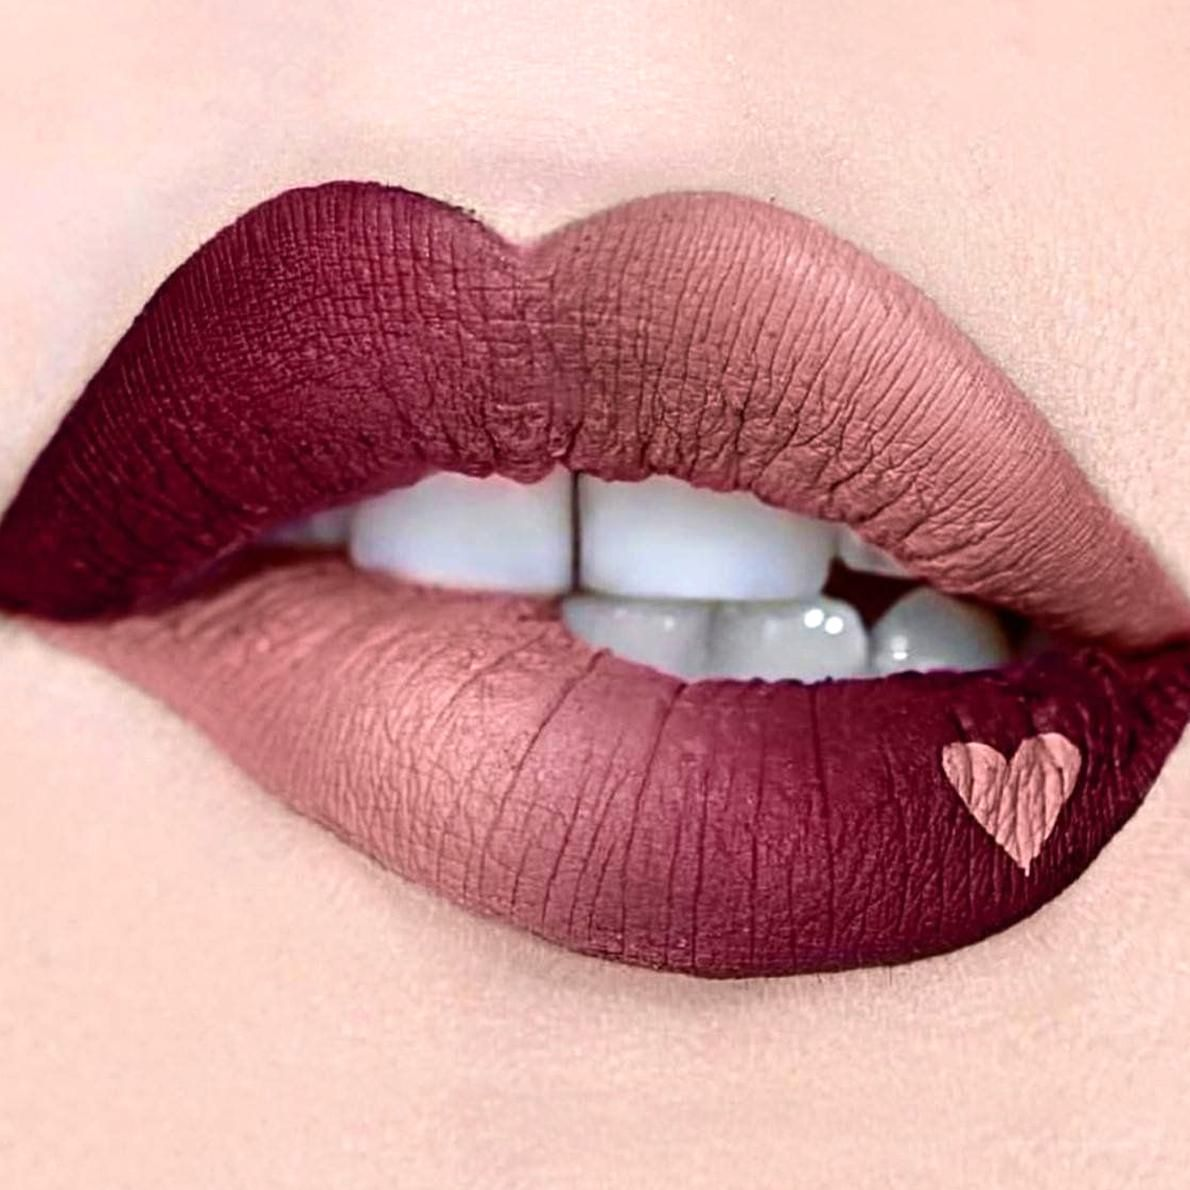 So Susan Cosmetics On Twitter A Beautiful Ombr Created With Our Liquid Matte Lipsticks In Shades Raisin Flesh Chocolate Berr In 2020 Lip Art Lip Art Makeup Lip Colors